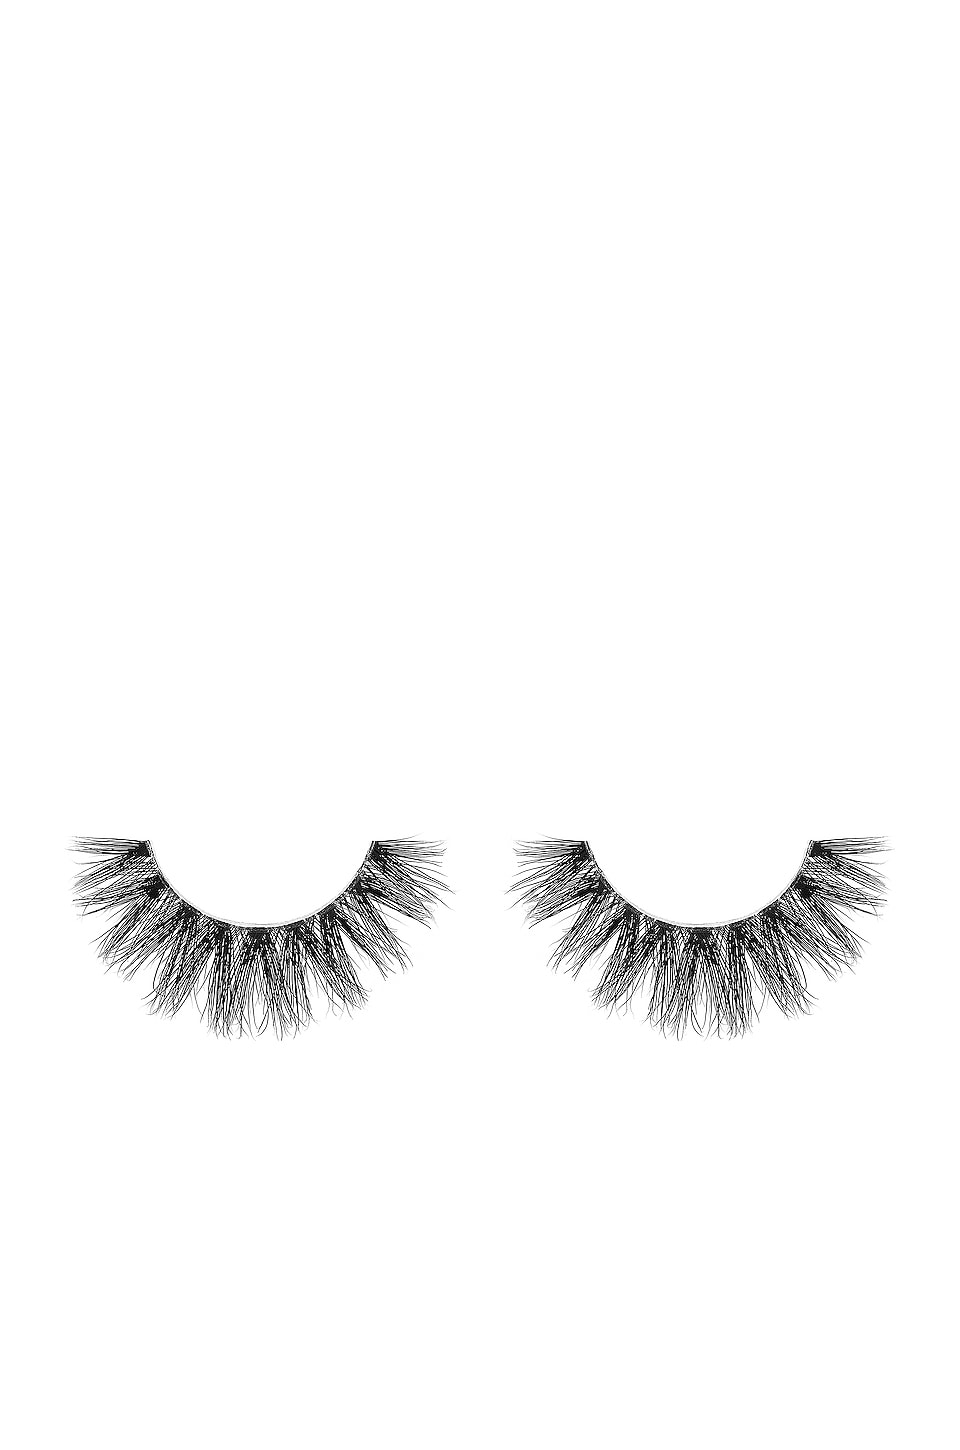 Velour Lashes Flash It! Mink Lashes in Black